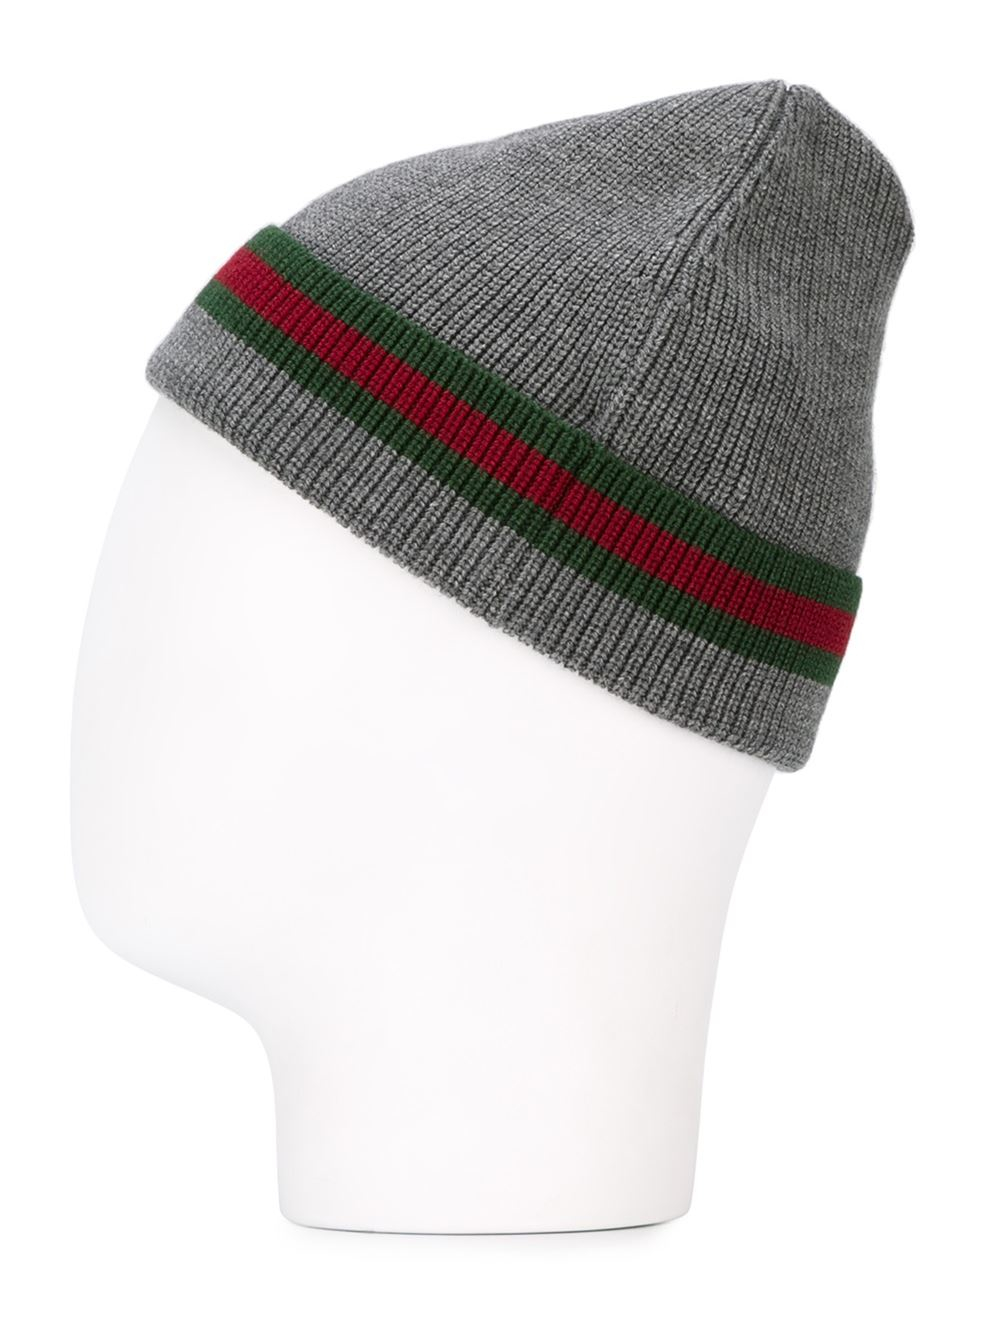 Lyst Gucci Wool Silk Beanie Hat In Gray For Men